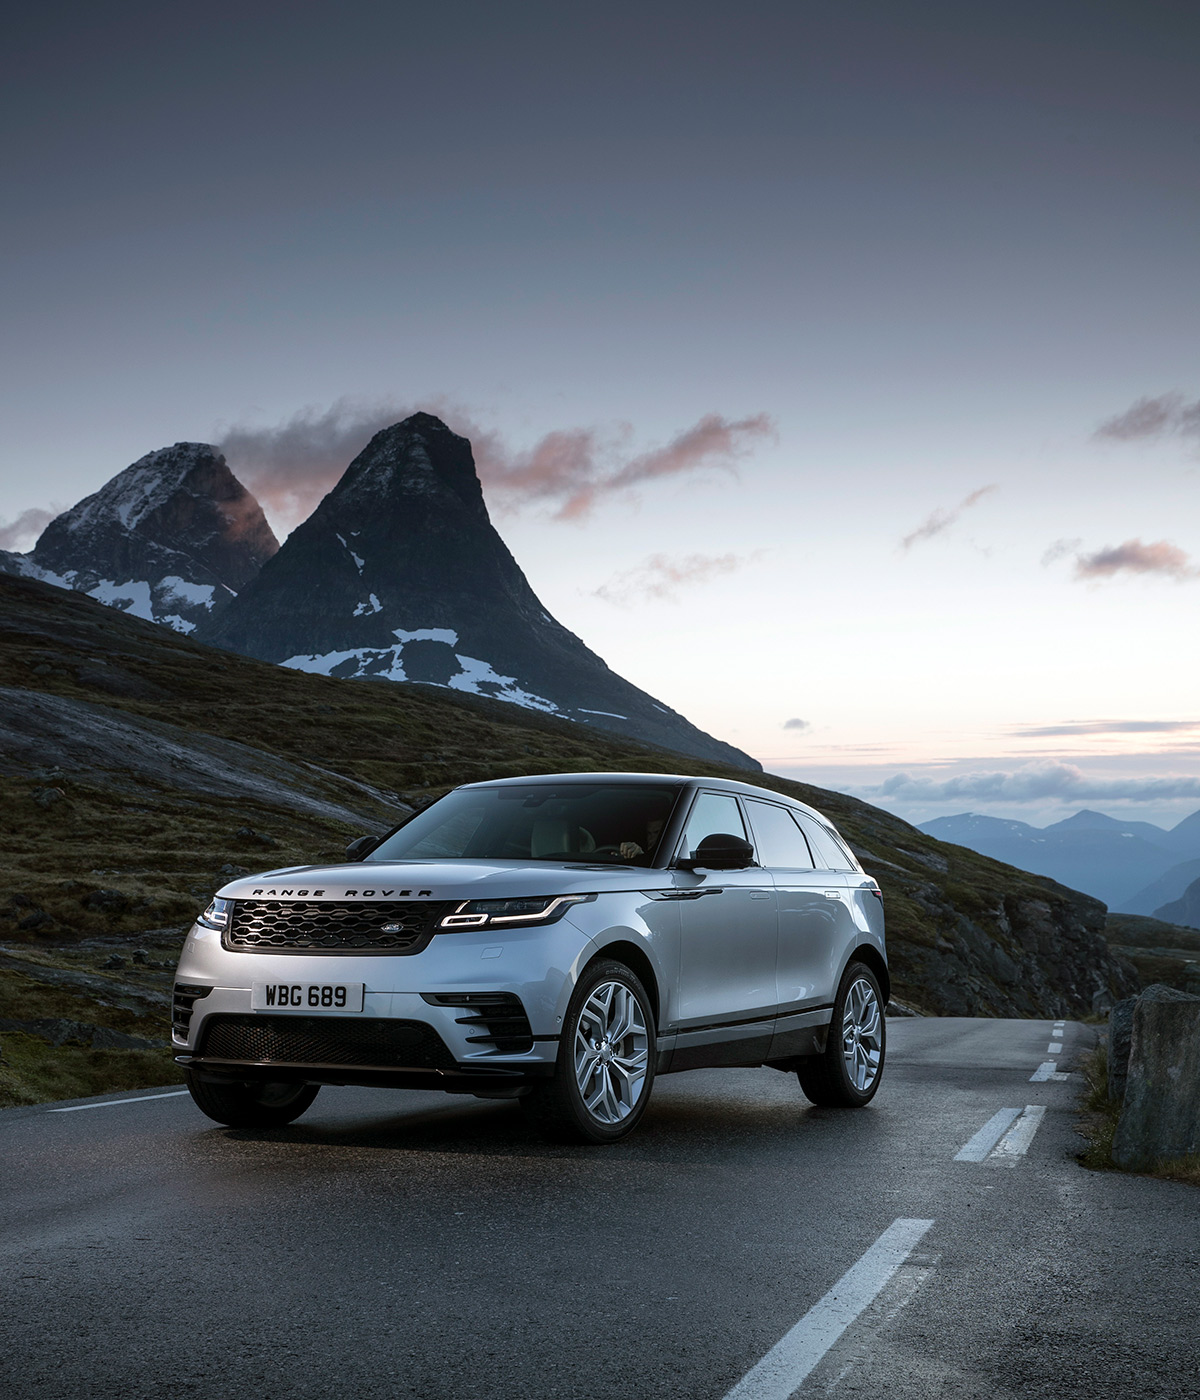 Range Rover Velar >> Range Rover Velar review 2018: design perspectives ...